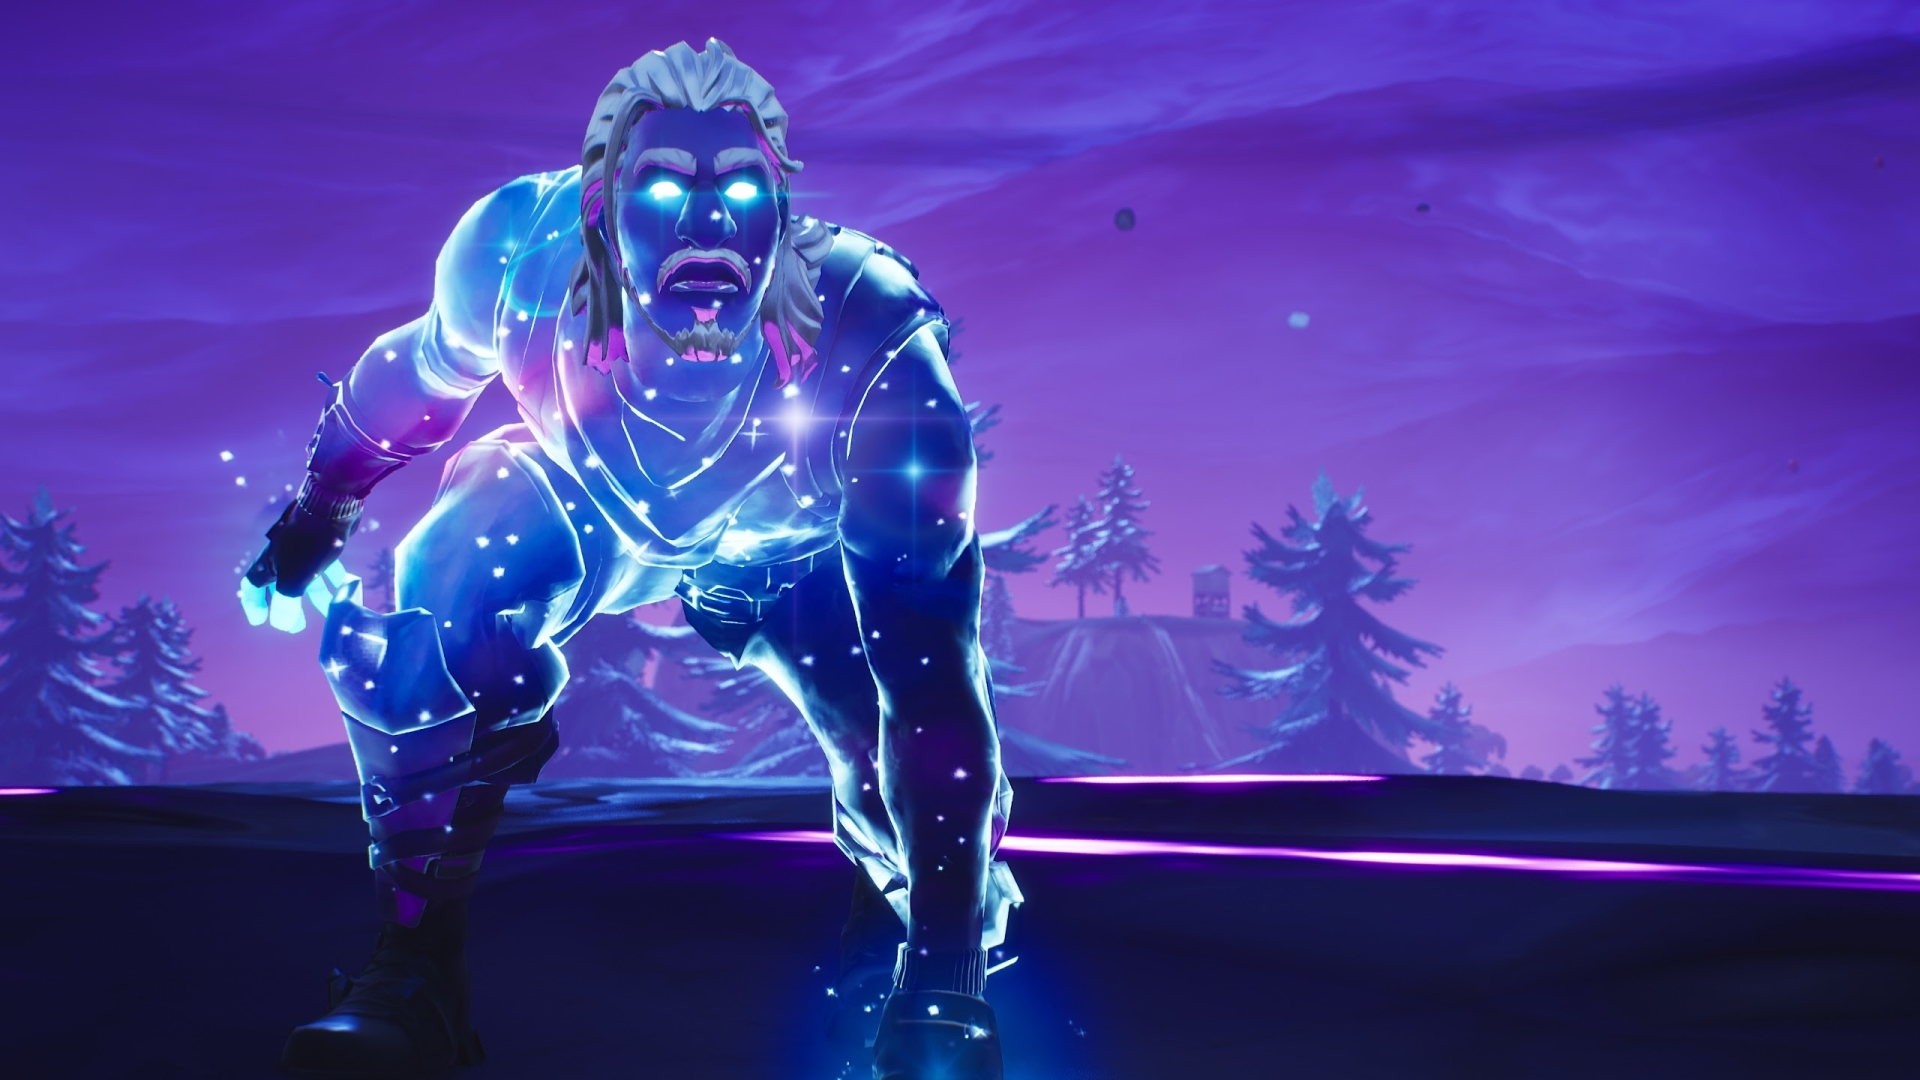 Fortnite Wallpaper 1080p Posted By Ryan Tremblay